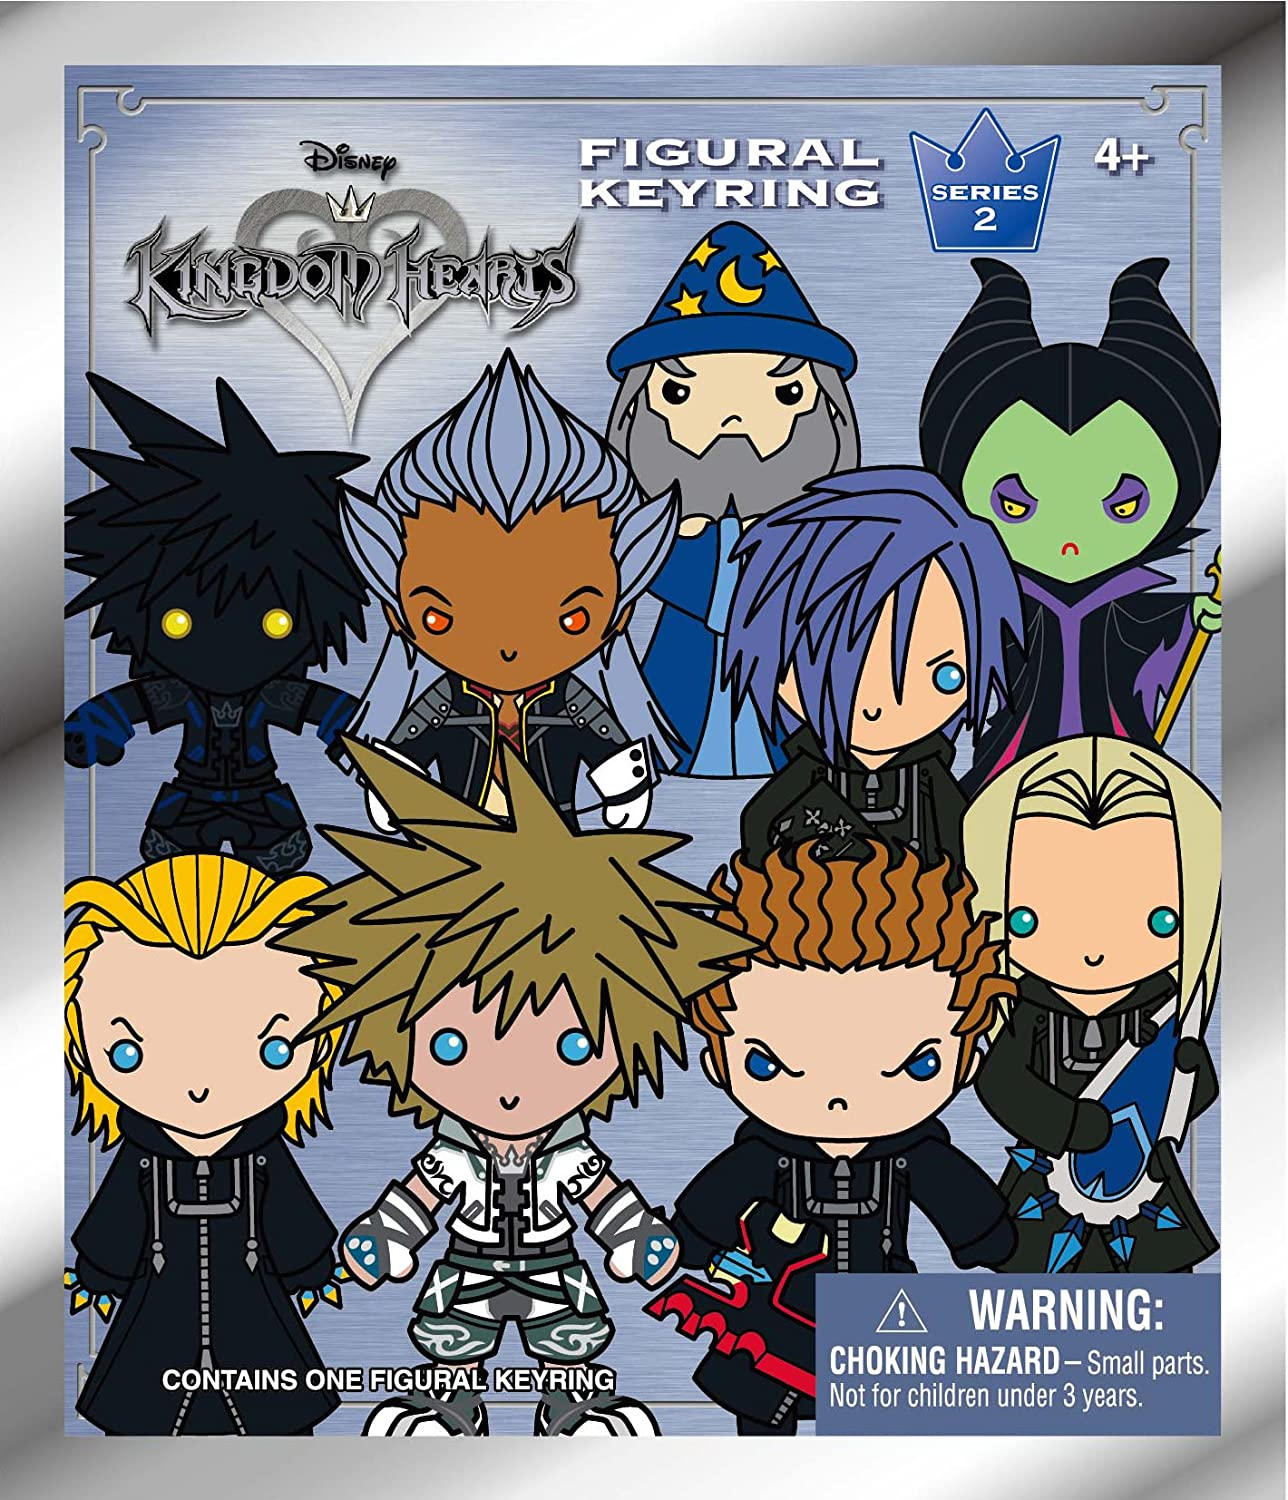 Disney Kingdom Hearts Series 2-3D Key Ring Collectible Blind Bag Accessory Monogram International 80165